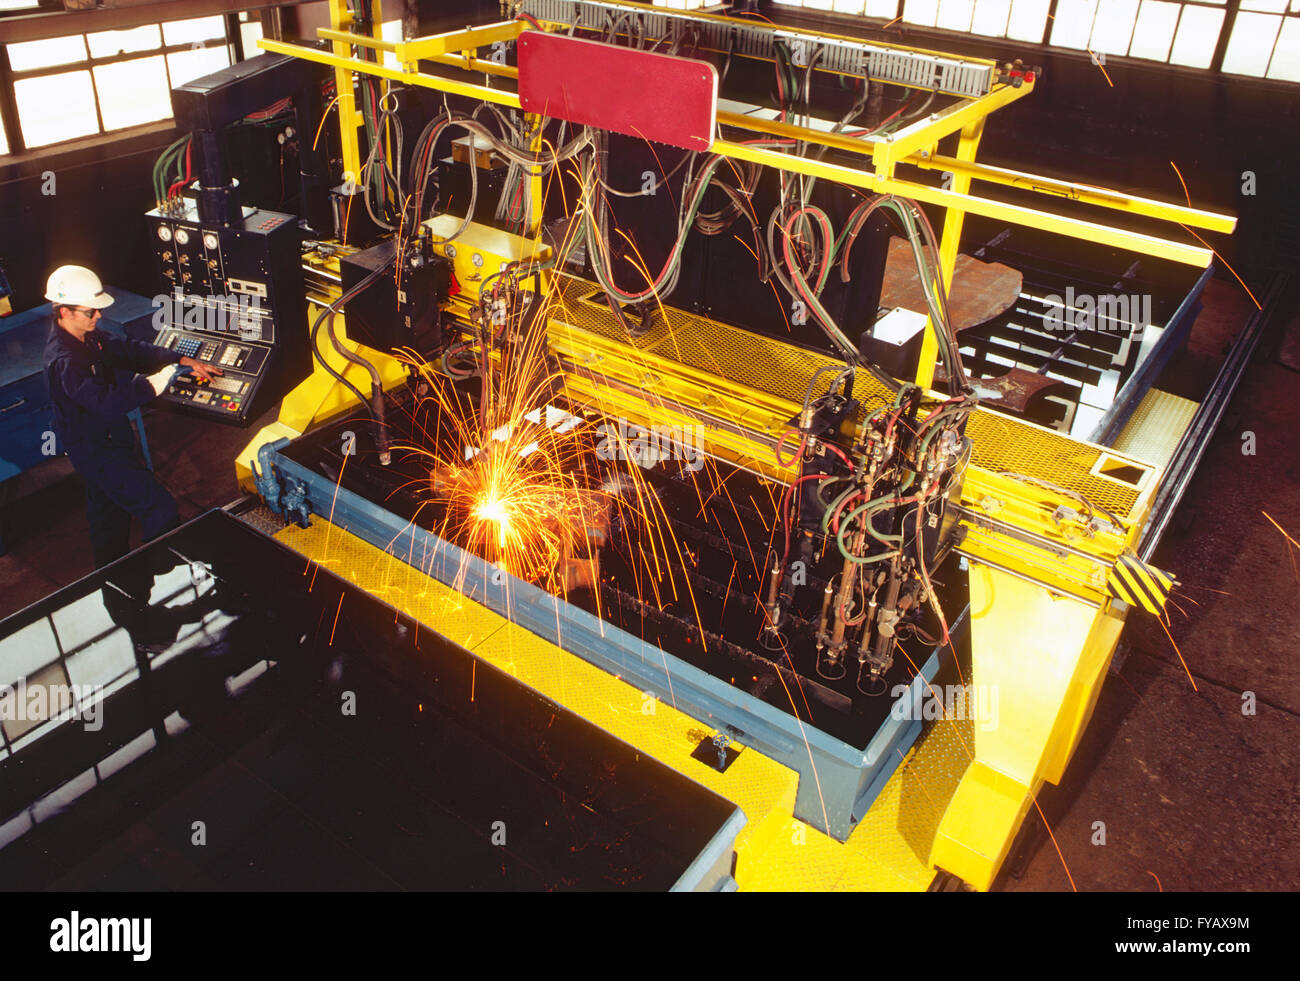 Sophisticated CAD - CAM machine automatically cutting steel - Stock Image